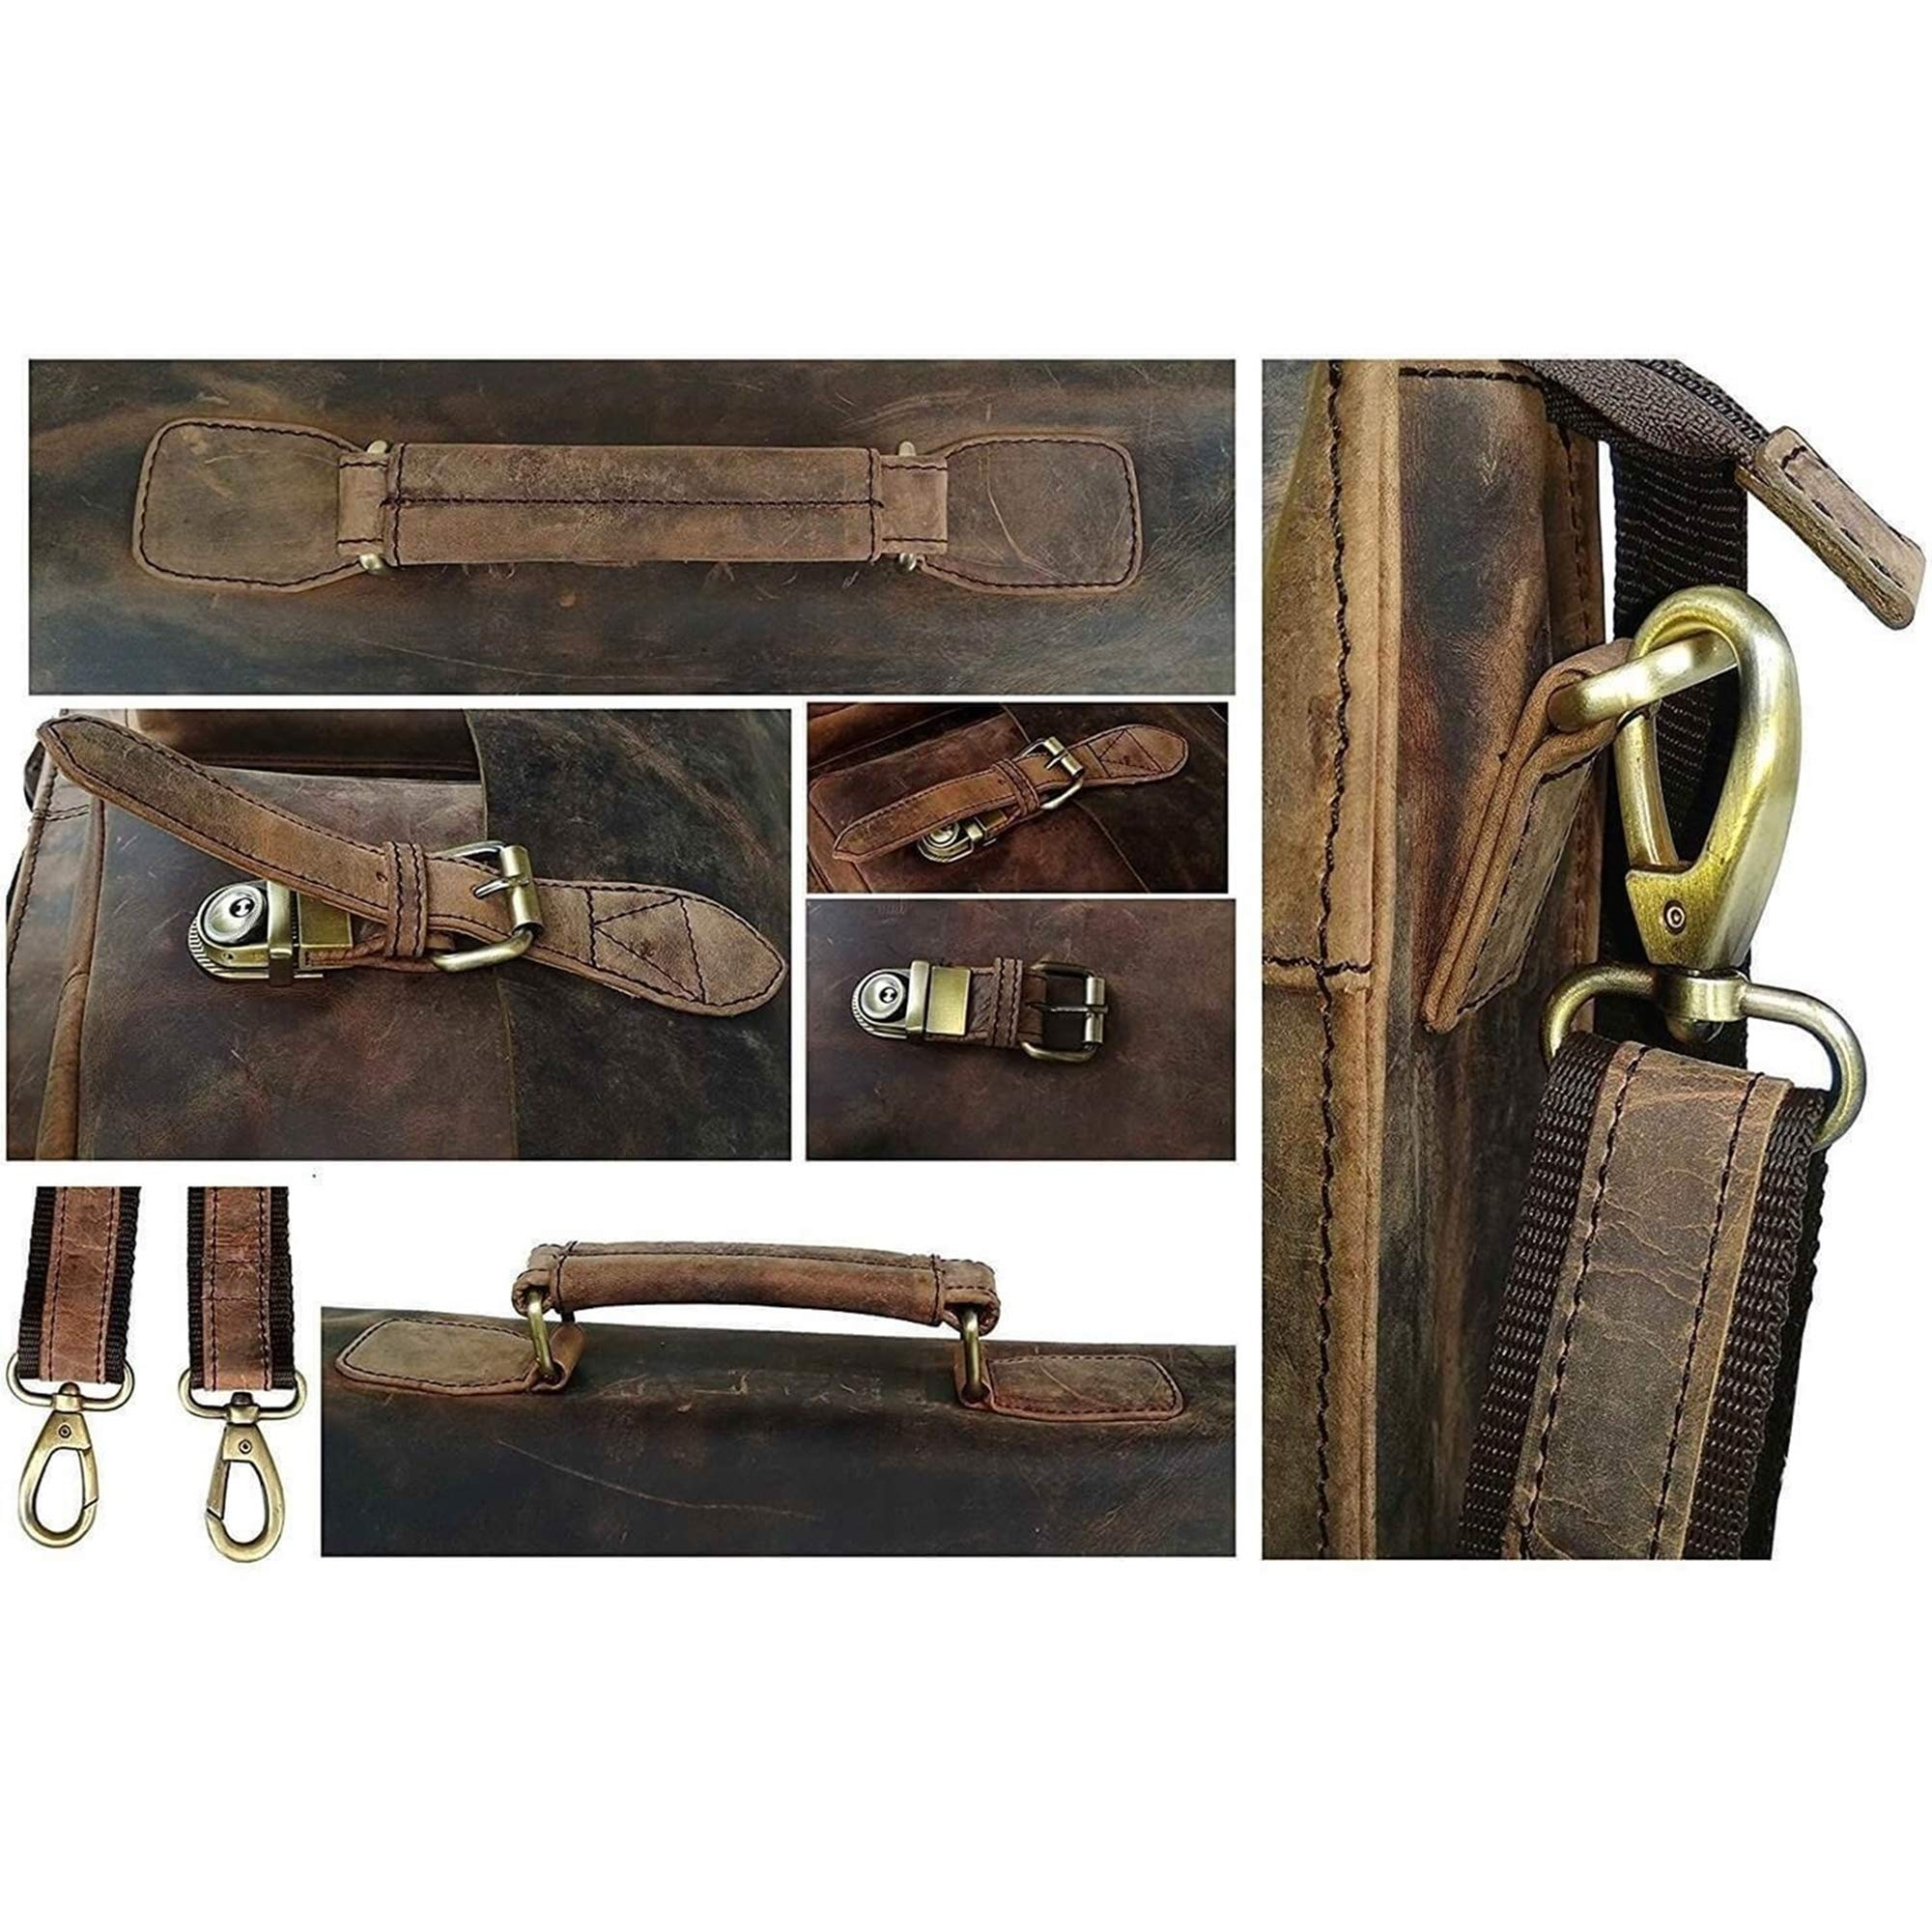 Retro Buffalo Hunter Leather Laptop Messenger Bag Office Briefcase College Bag by Urban Hide (18'') by Urban Hide (Image #7)